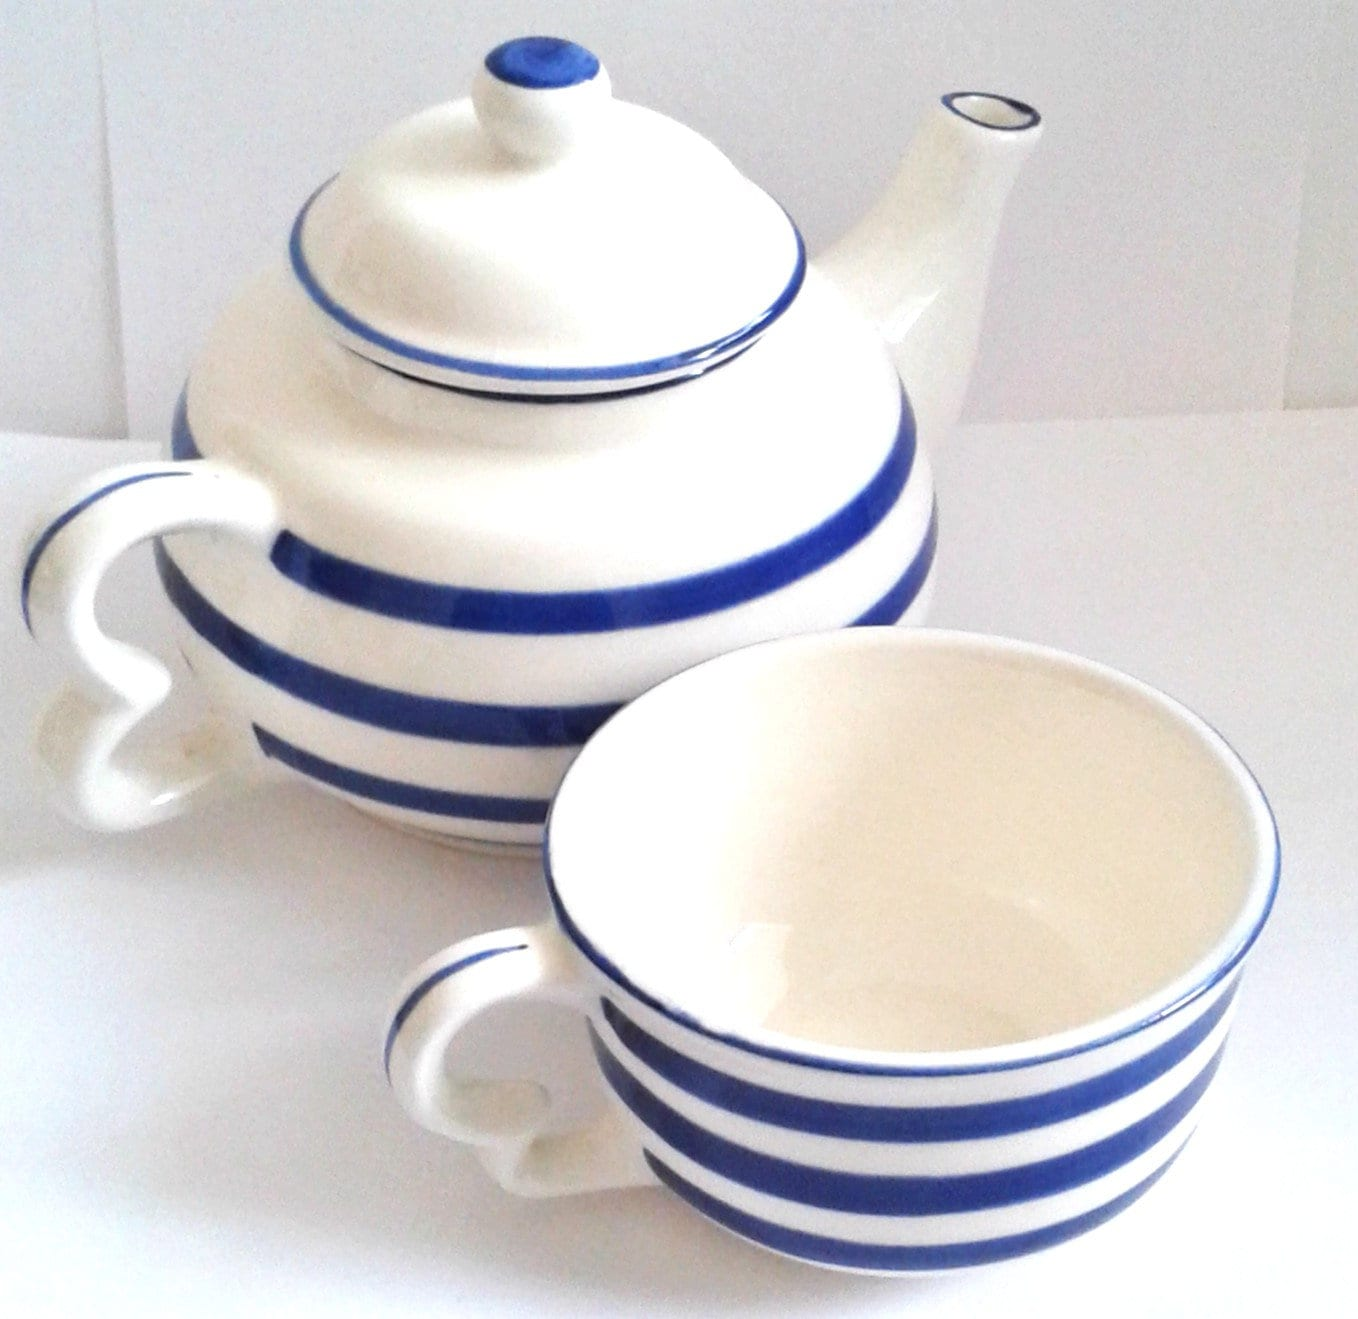 Teapot With Cup Vintage Blue And White Porcelain Teapot And Cup Set